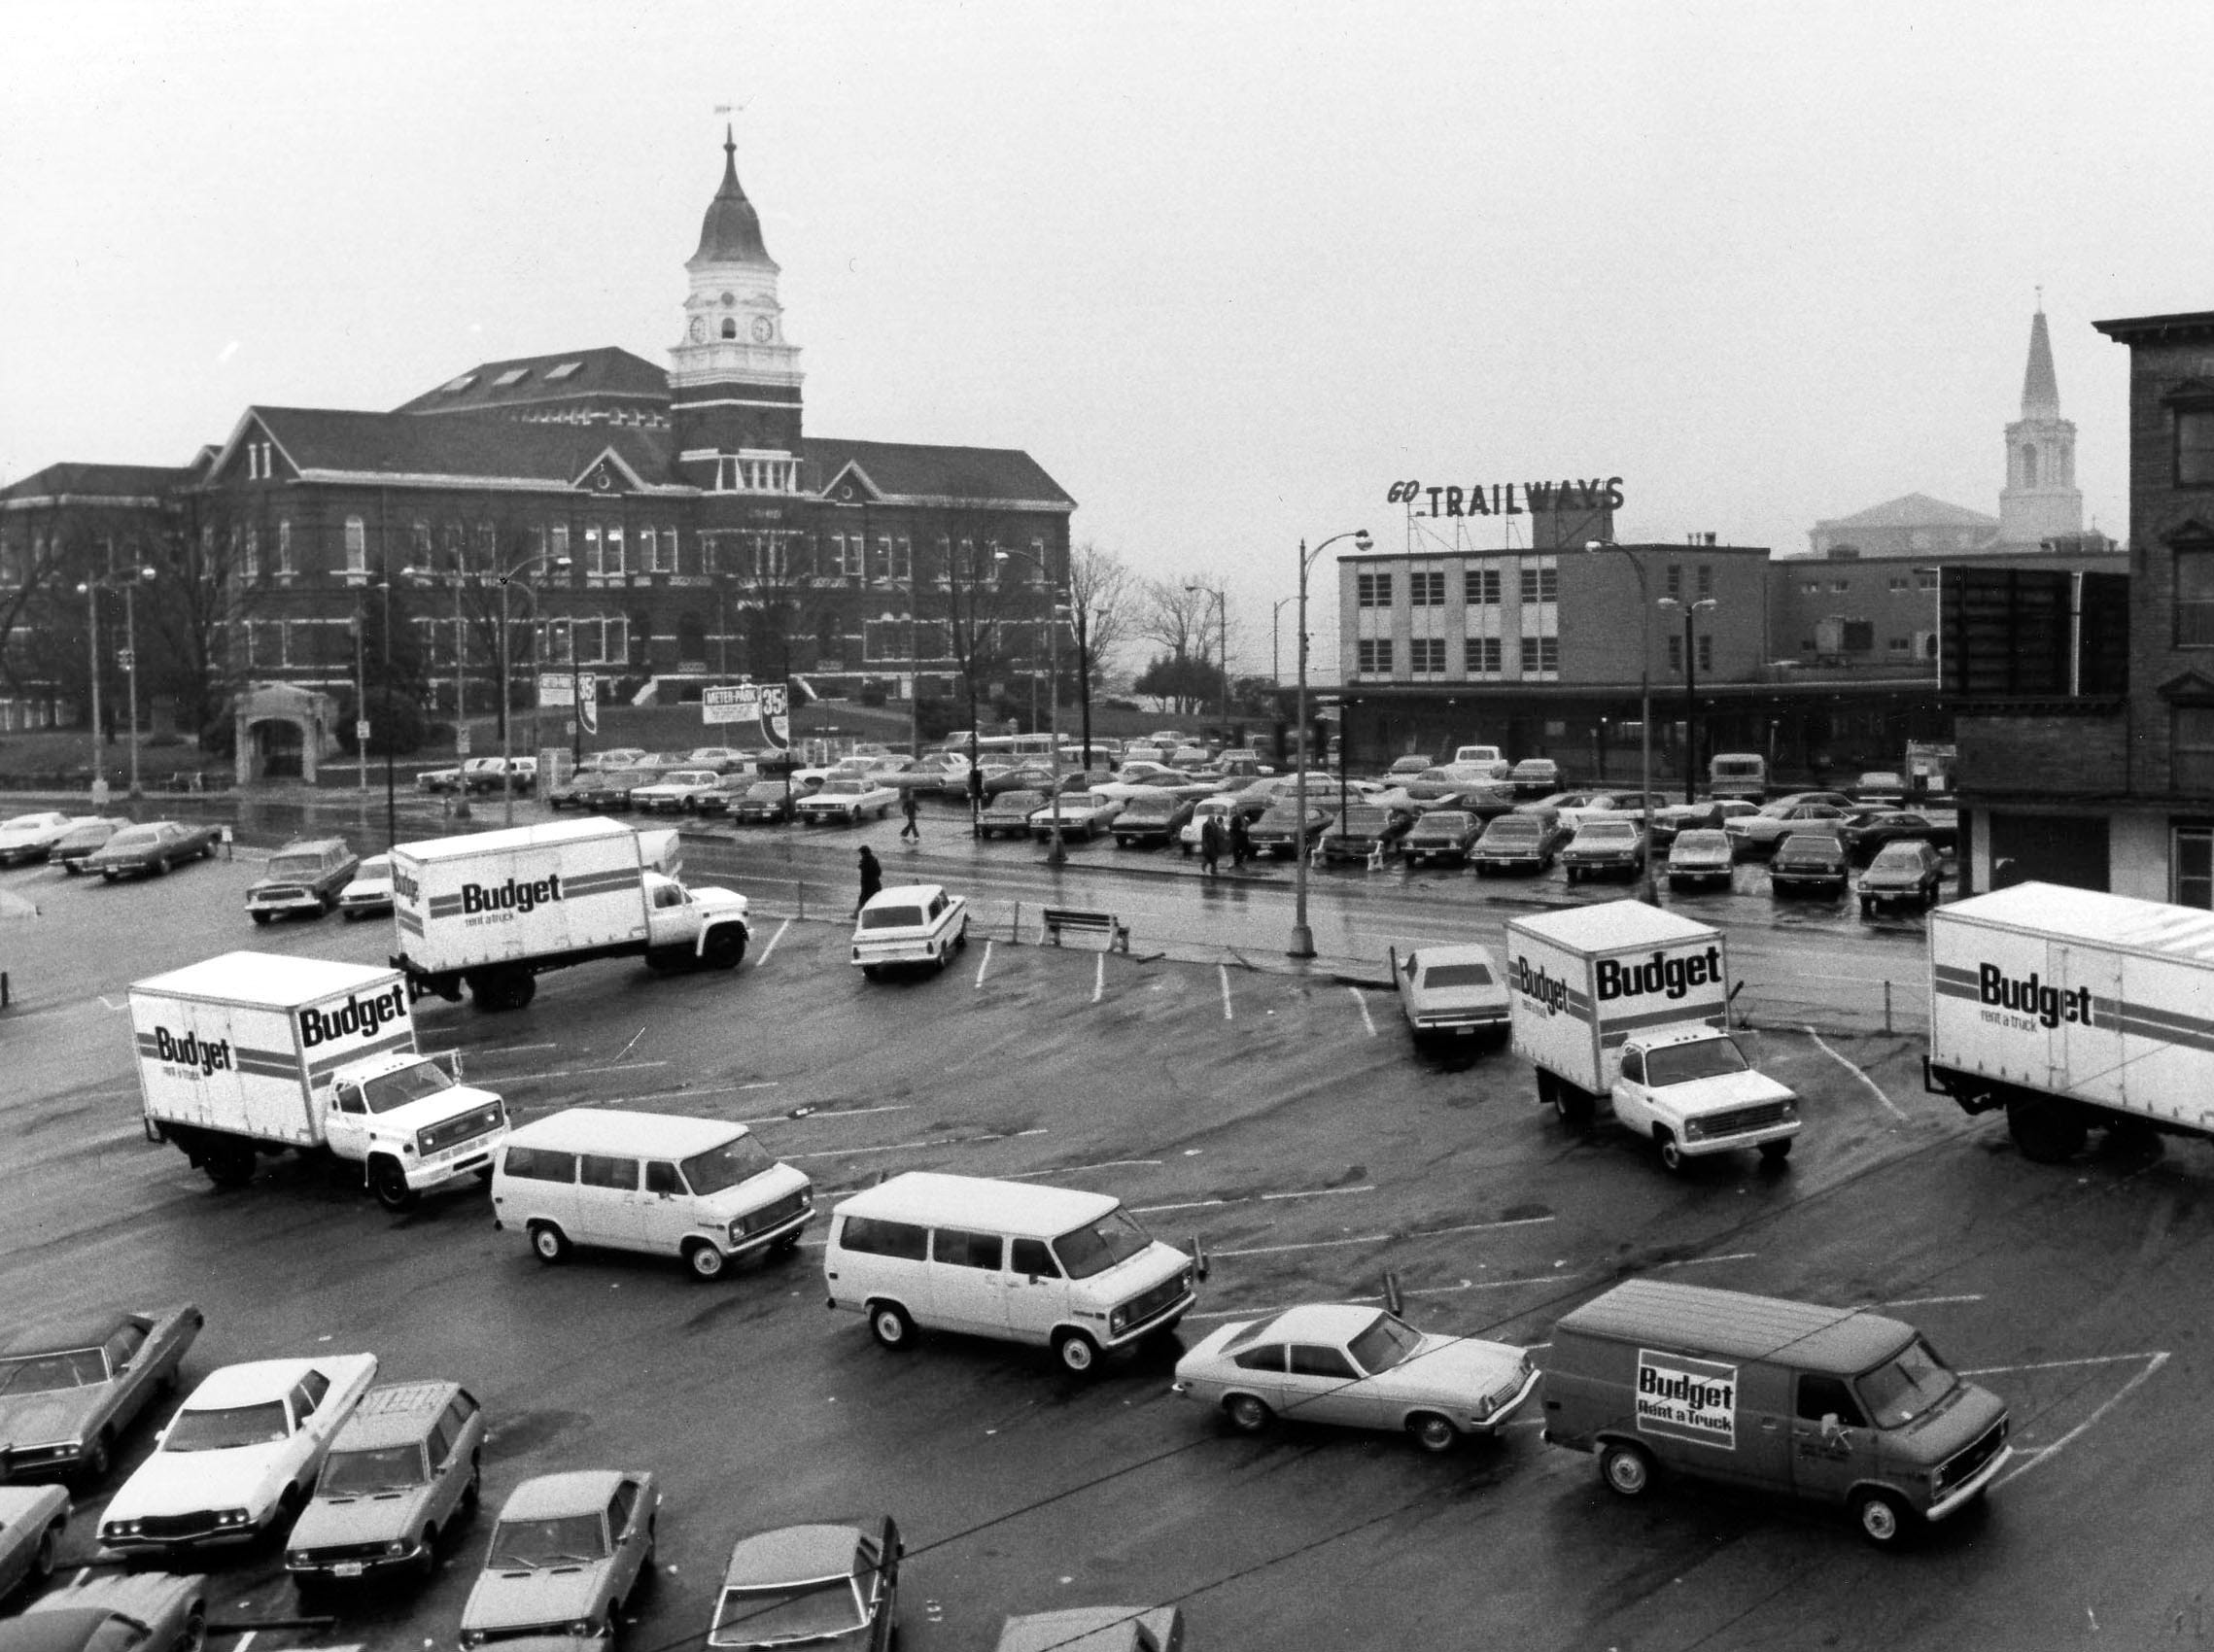 In a November 7, 1977, photograph, the future location of the United American Bank is seen at the corner of Gay Street and Cumberland Avenue.